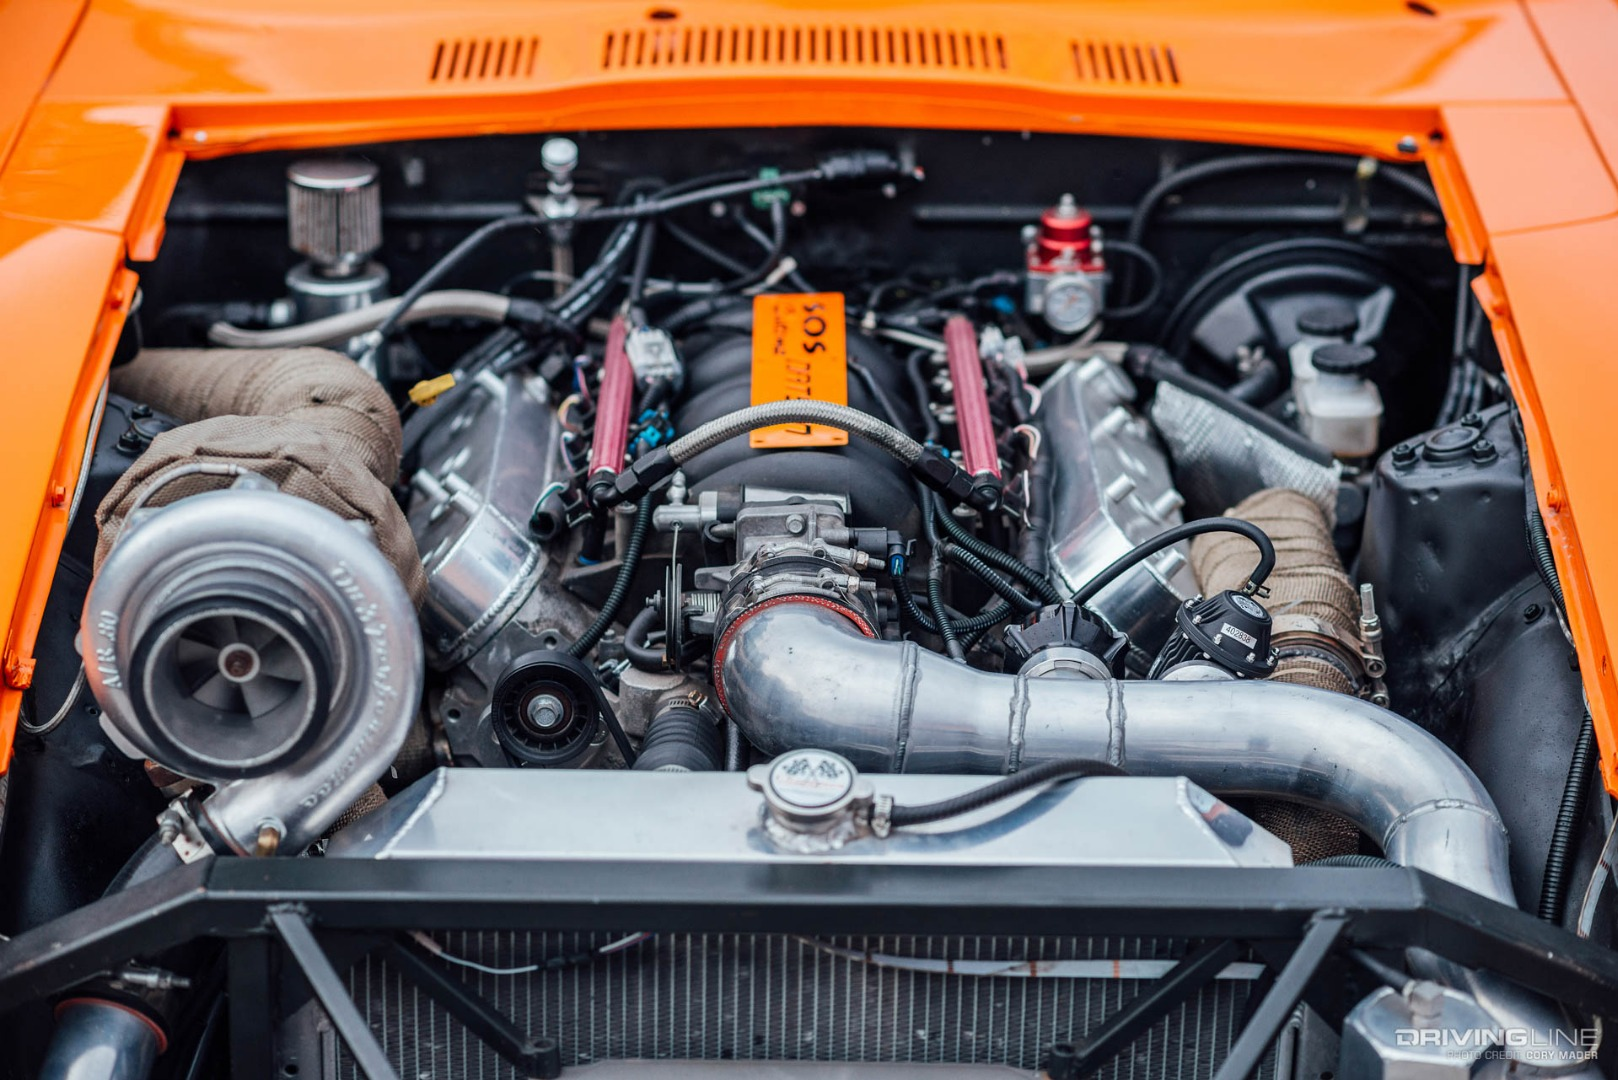 Shooting Star: An LS Swapped 240Z That's Burning Brightly